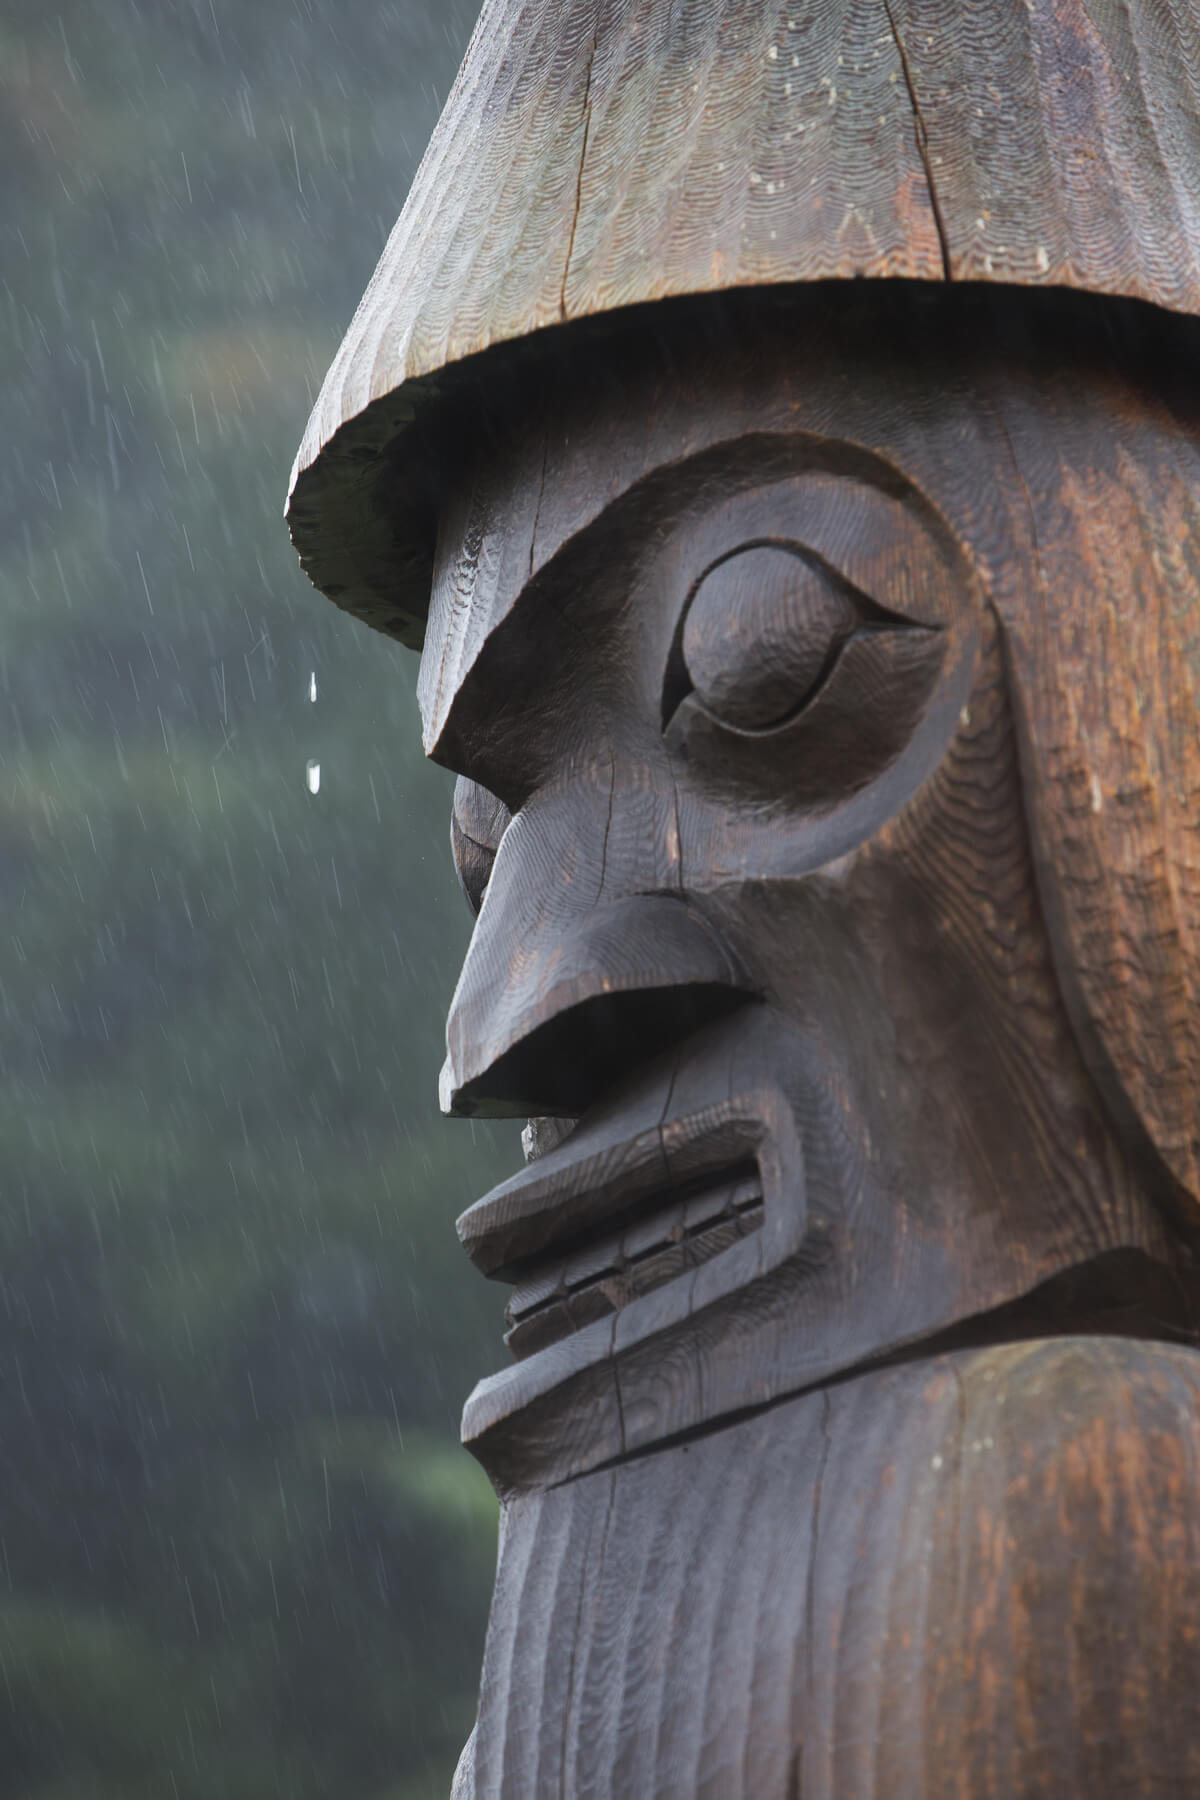 Close up of wooden carved totem pole in Yuquot, at the end/start of te Nootka Trail